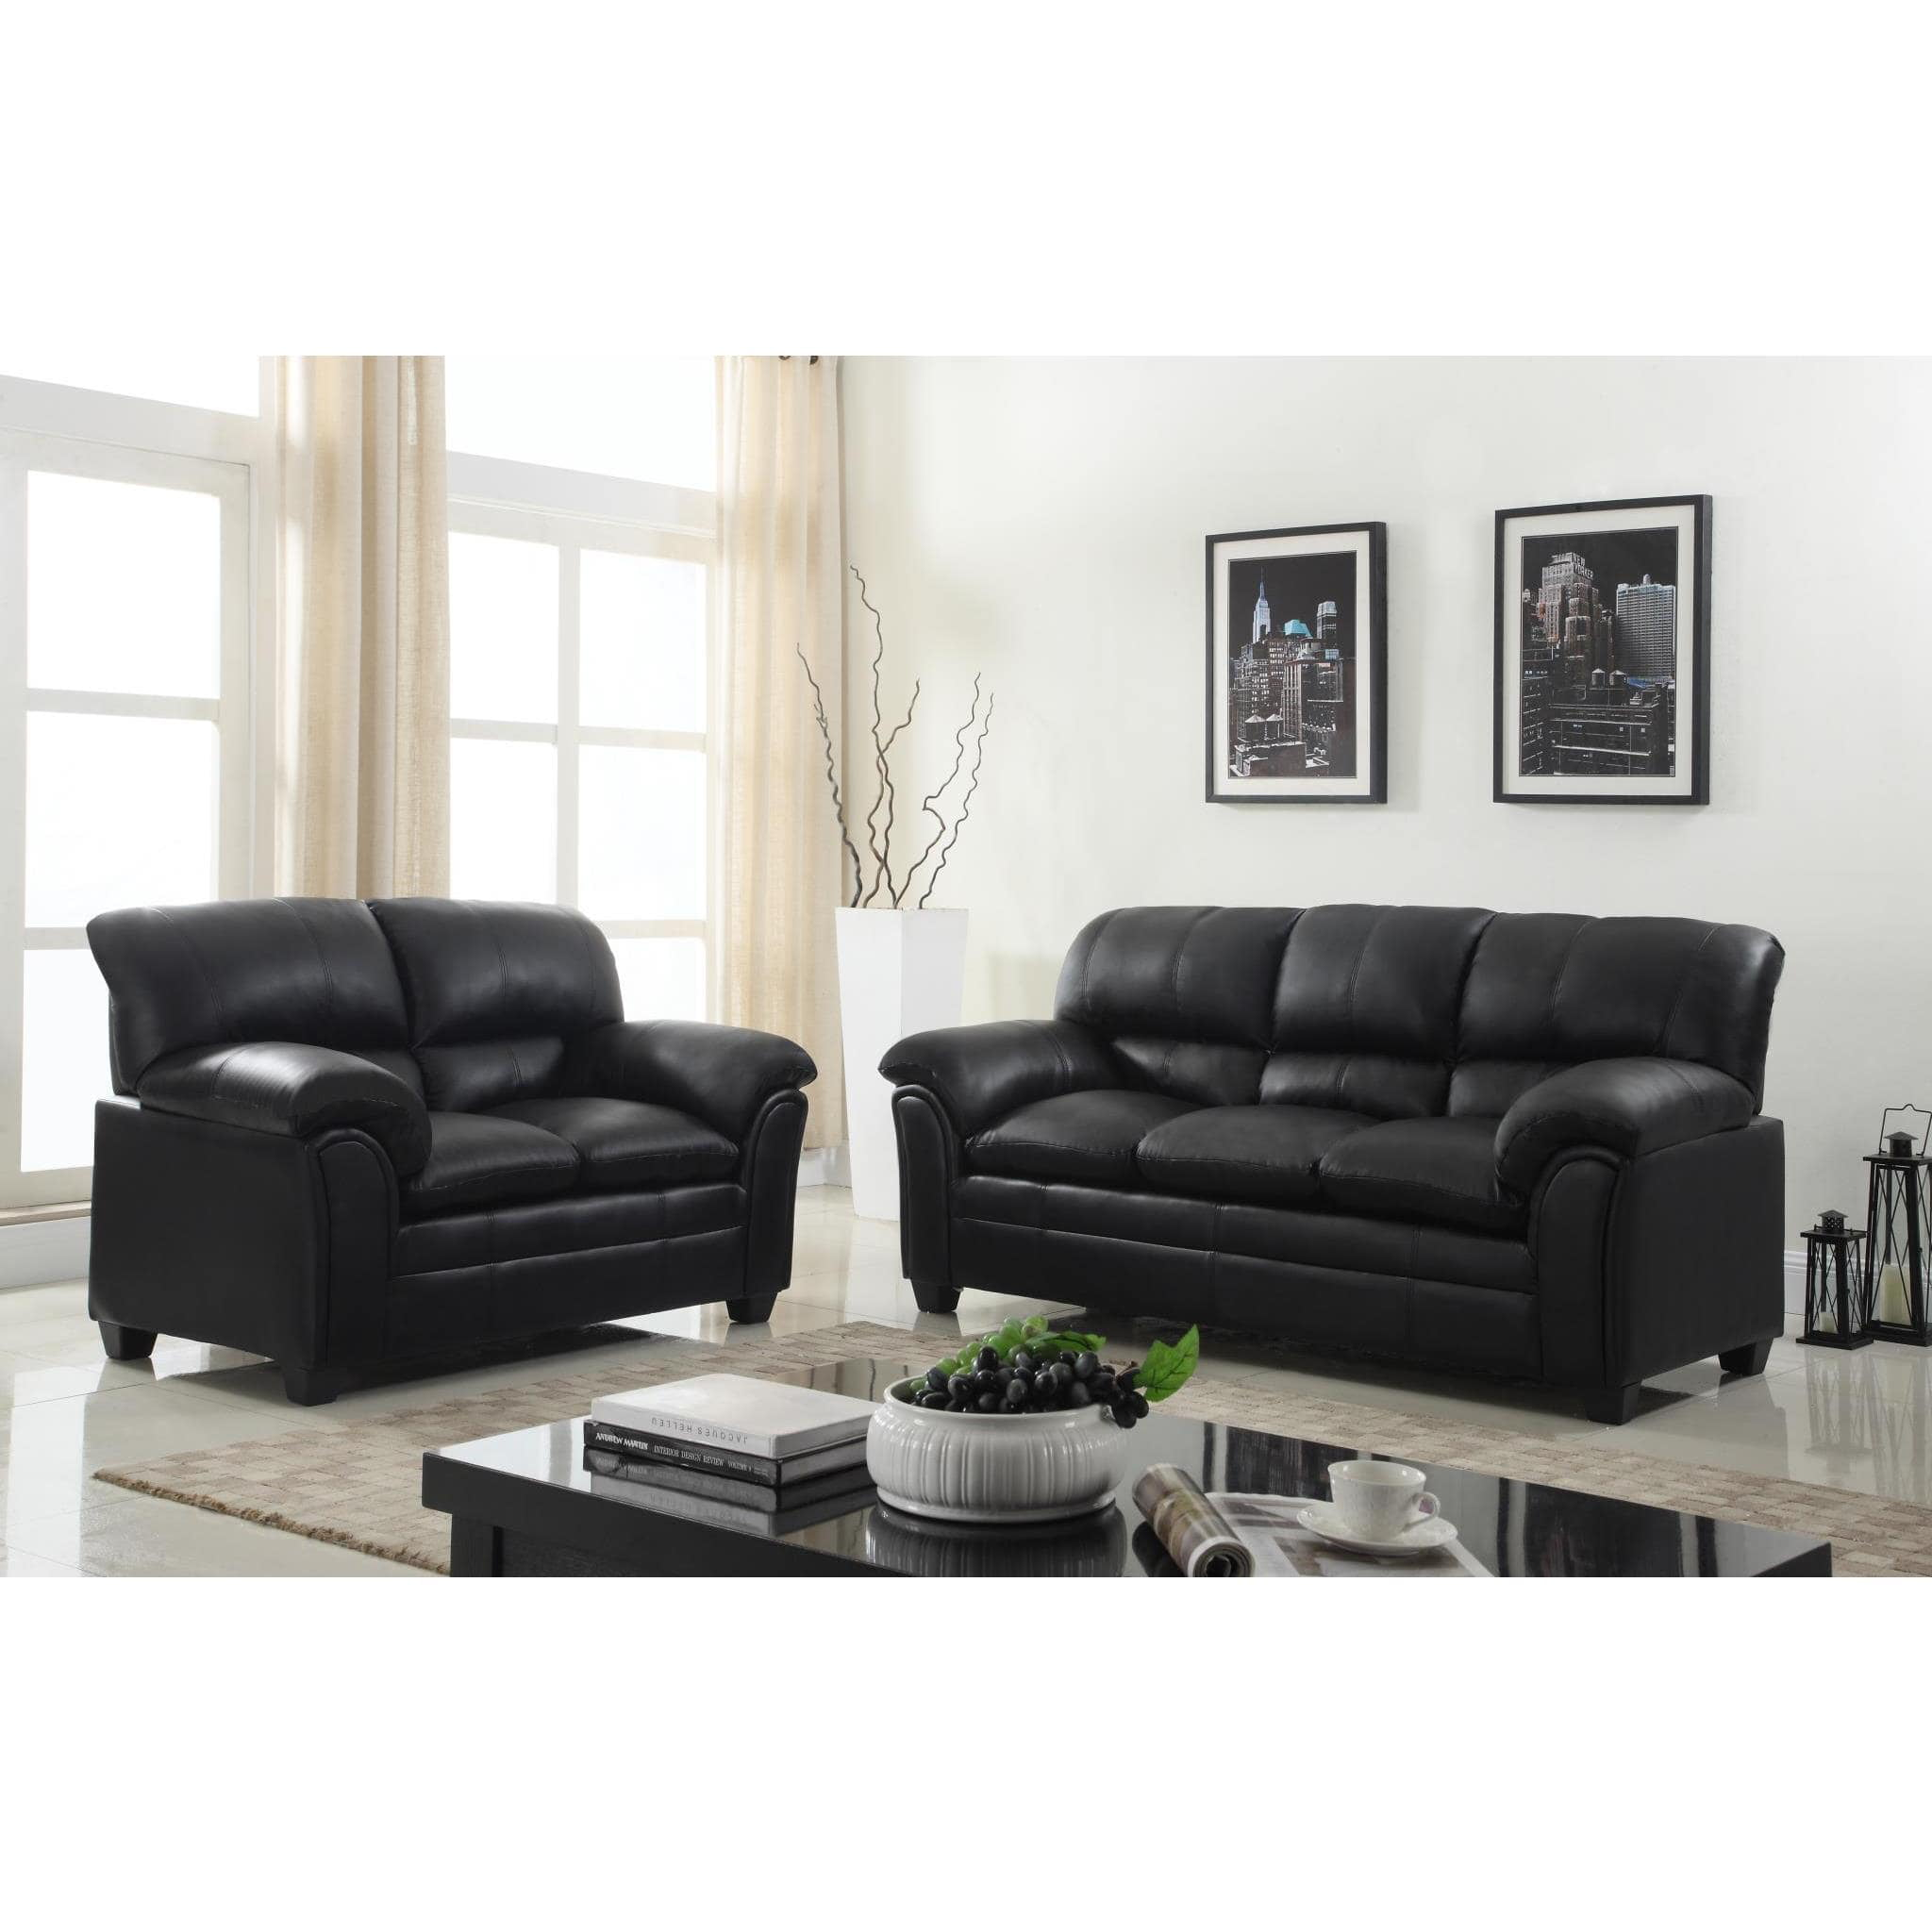 faux leather living room furniture gtu furniture faux leather sofa and loveseat living room 21775